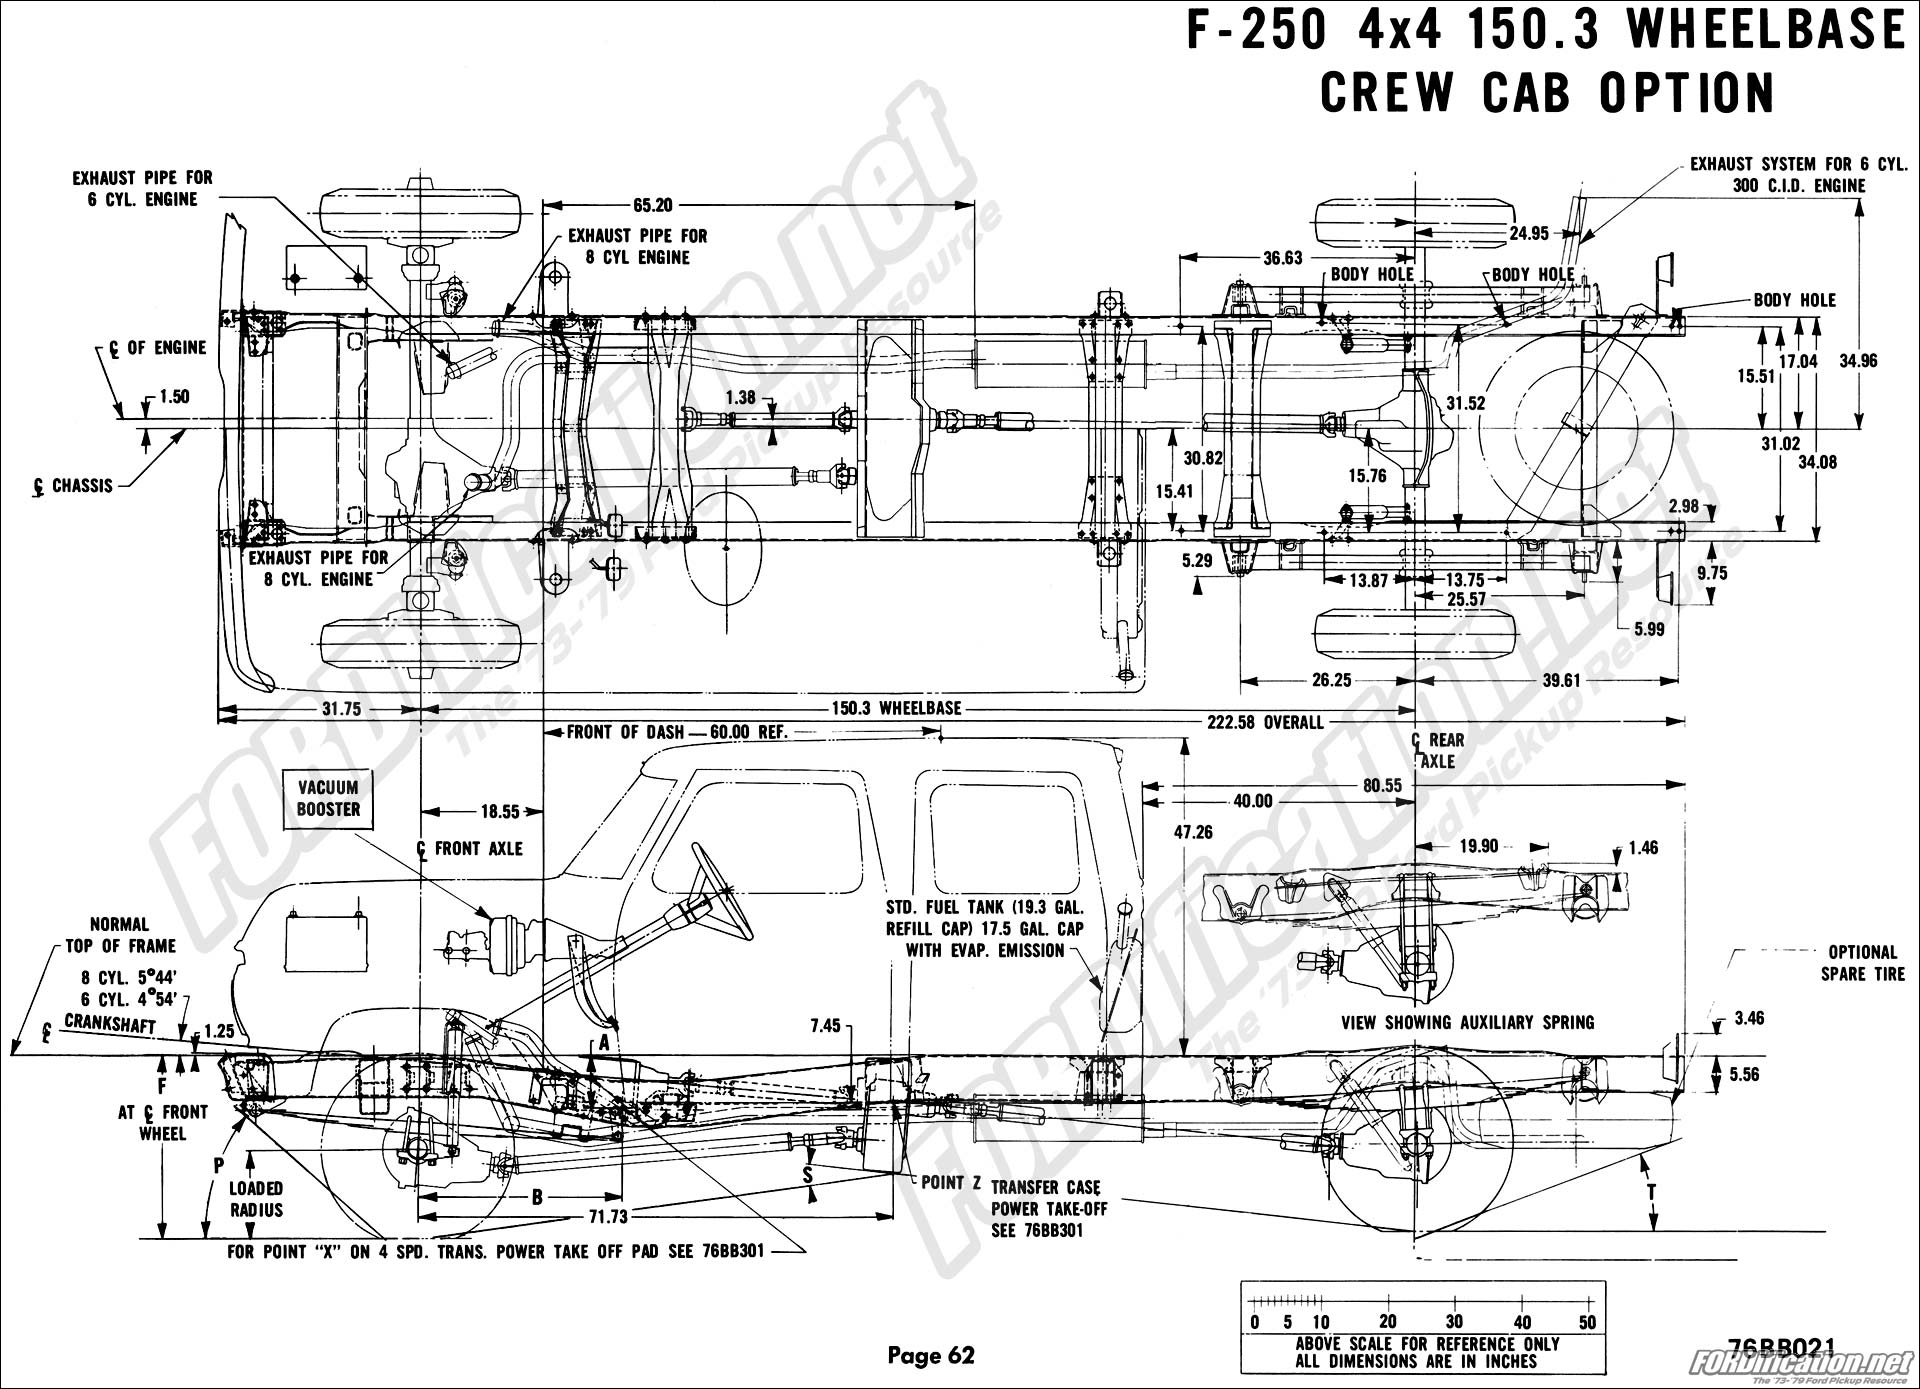 f550 frame diagram box wiring diagram f250 front end diagram f250 frame diagram [ 1920 x 1389 Pixel ]